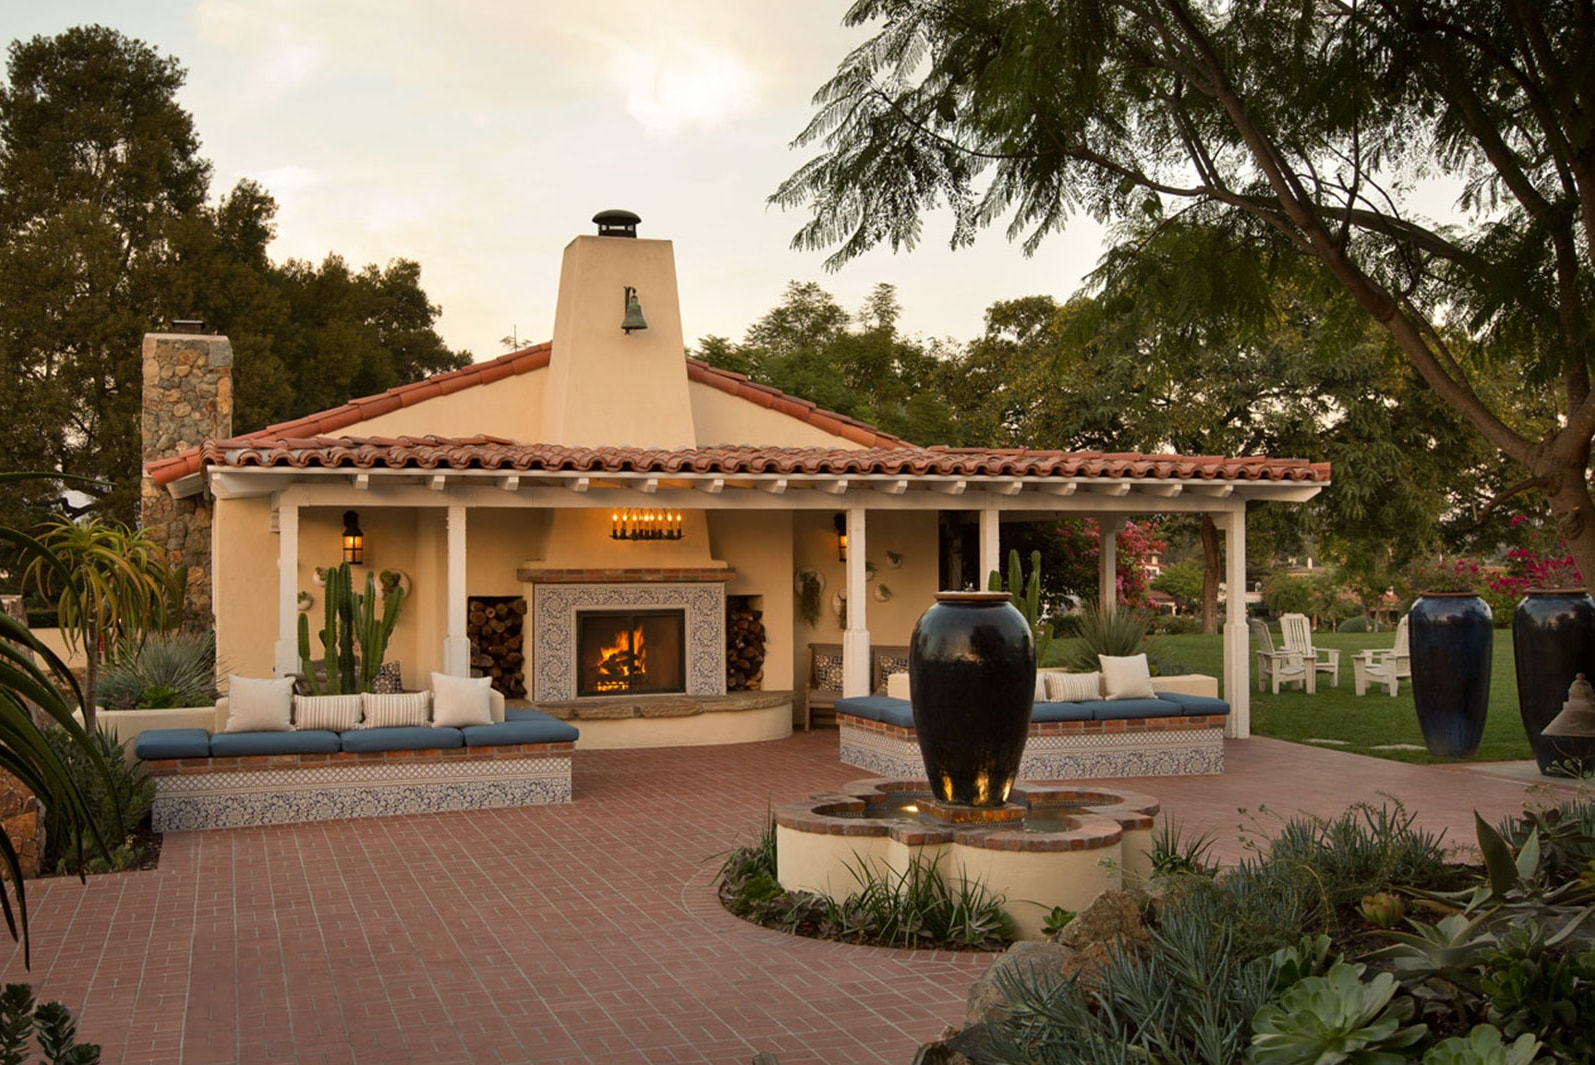 Inn at Rancho.jpg